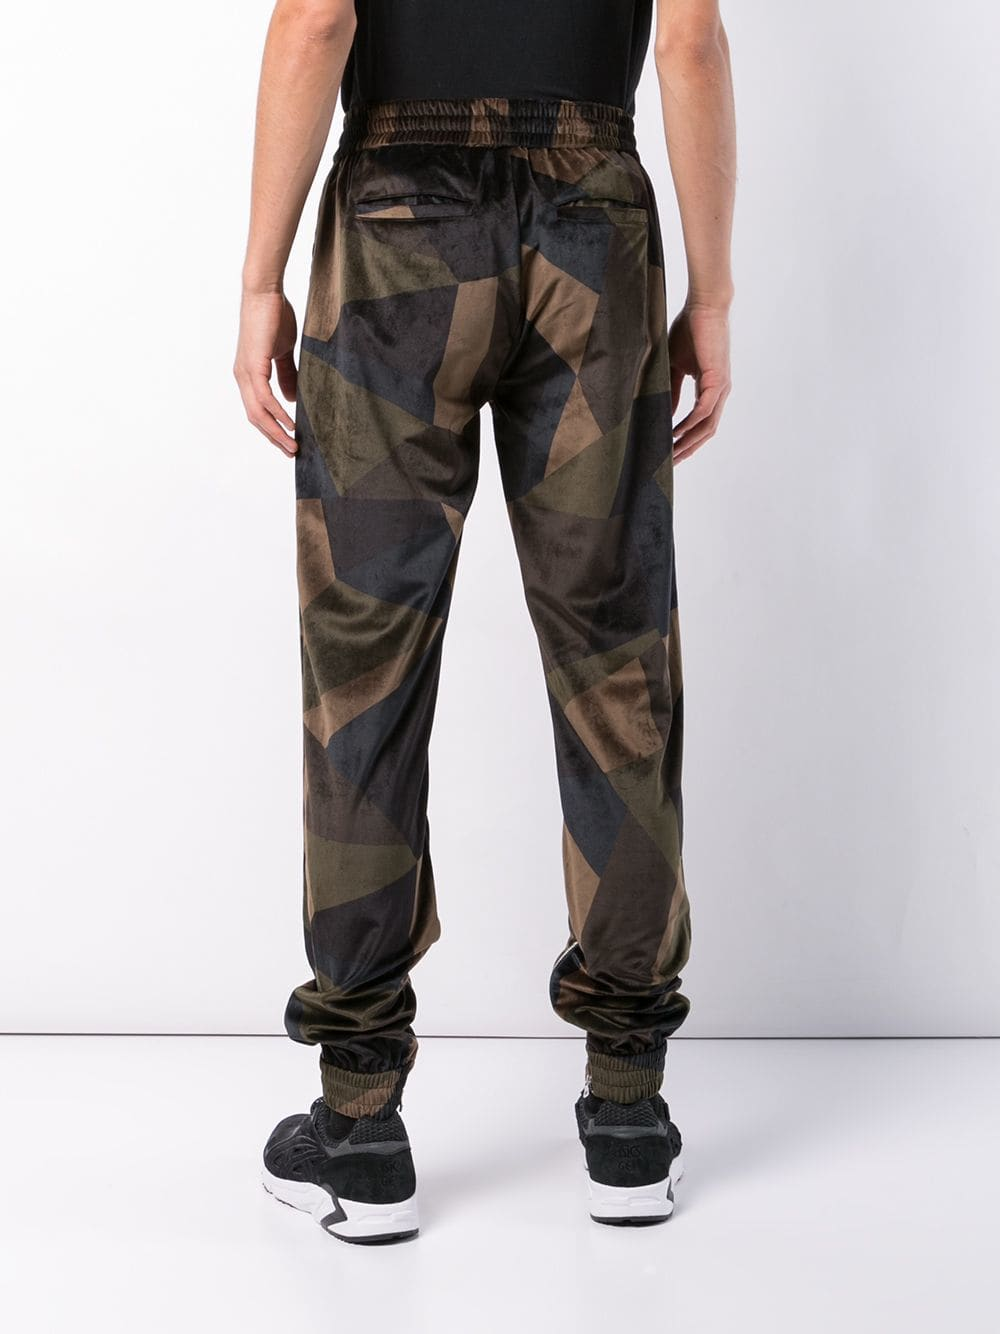 ABSTRACT JOGGER - ARMY GREEN